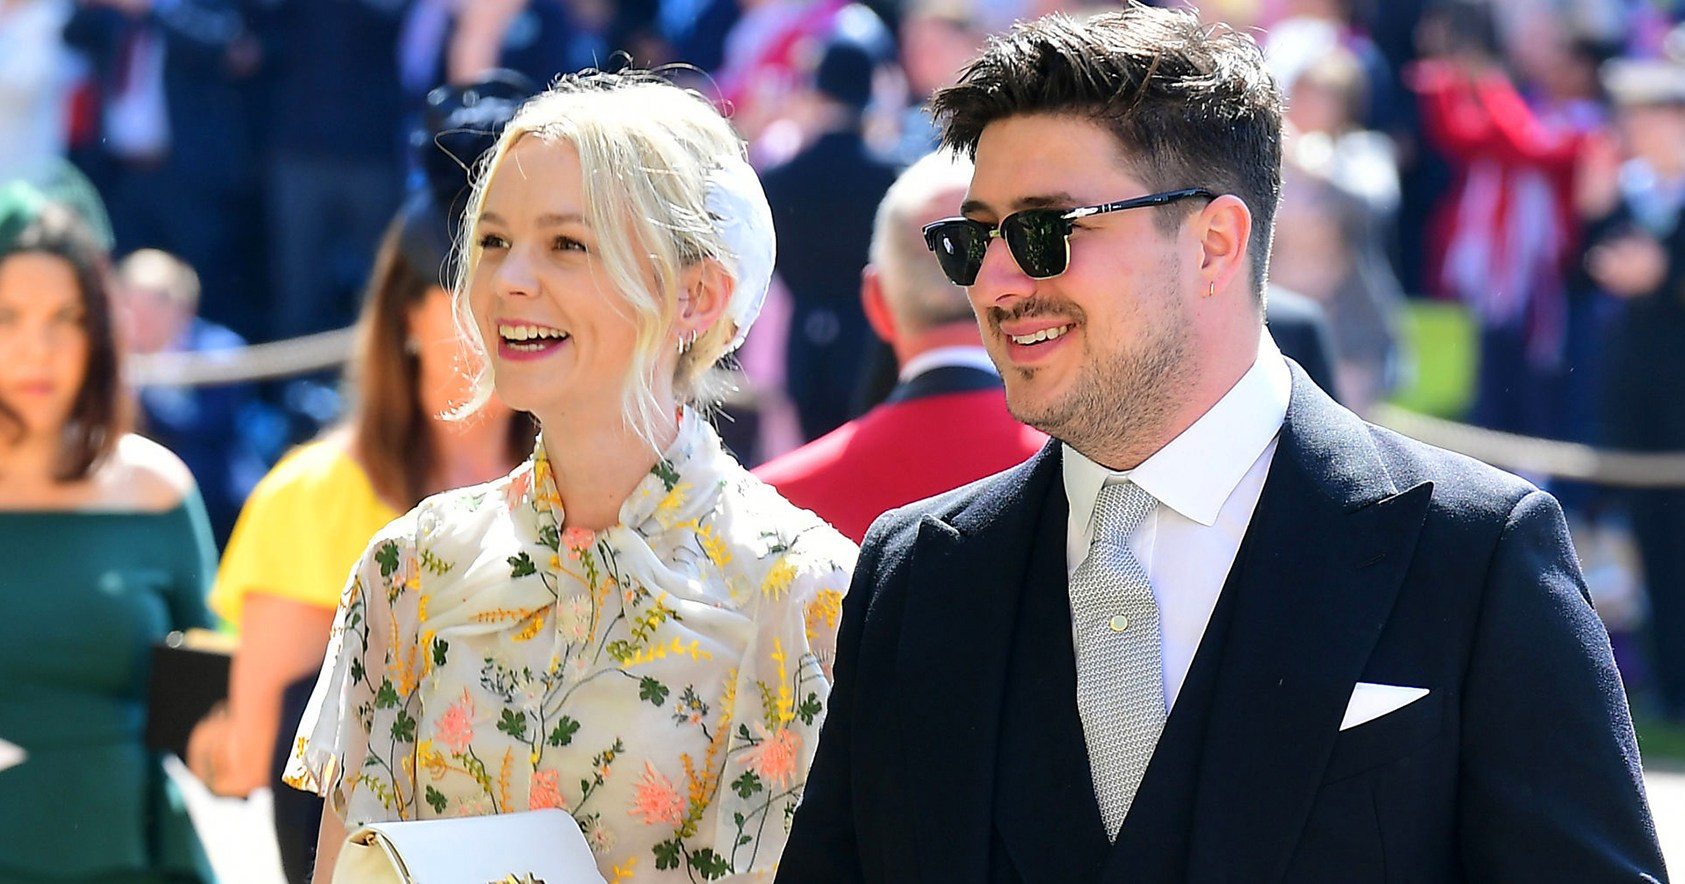 Carey Mulligan Reacts to Pal Prince Harry's Baby News: Watch!